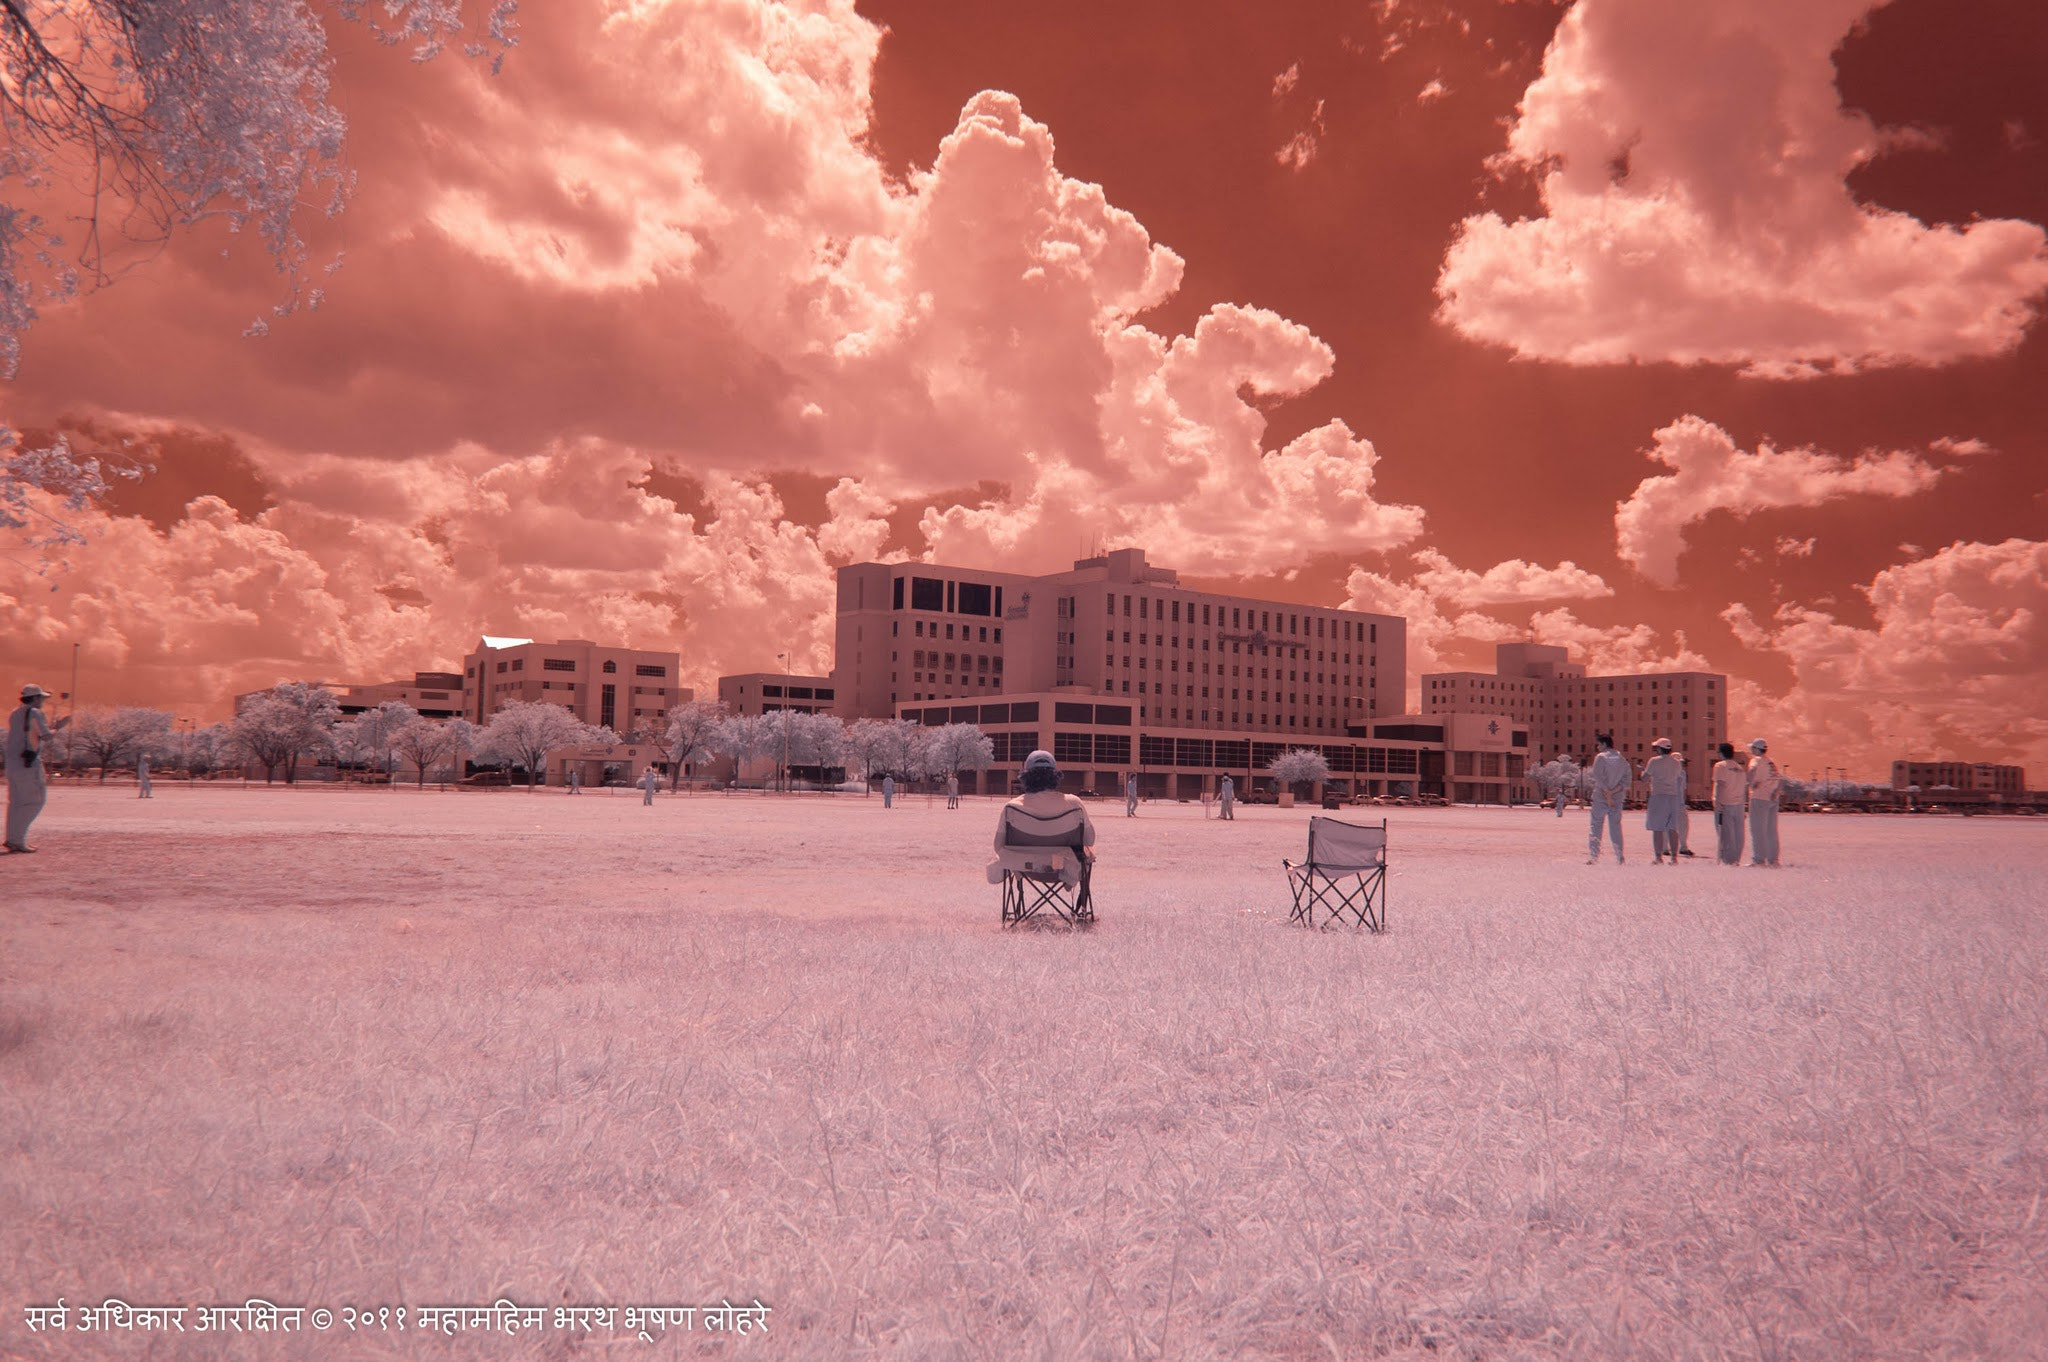 Photograph Cricket Field in IR by Bharath Lohray on 500px